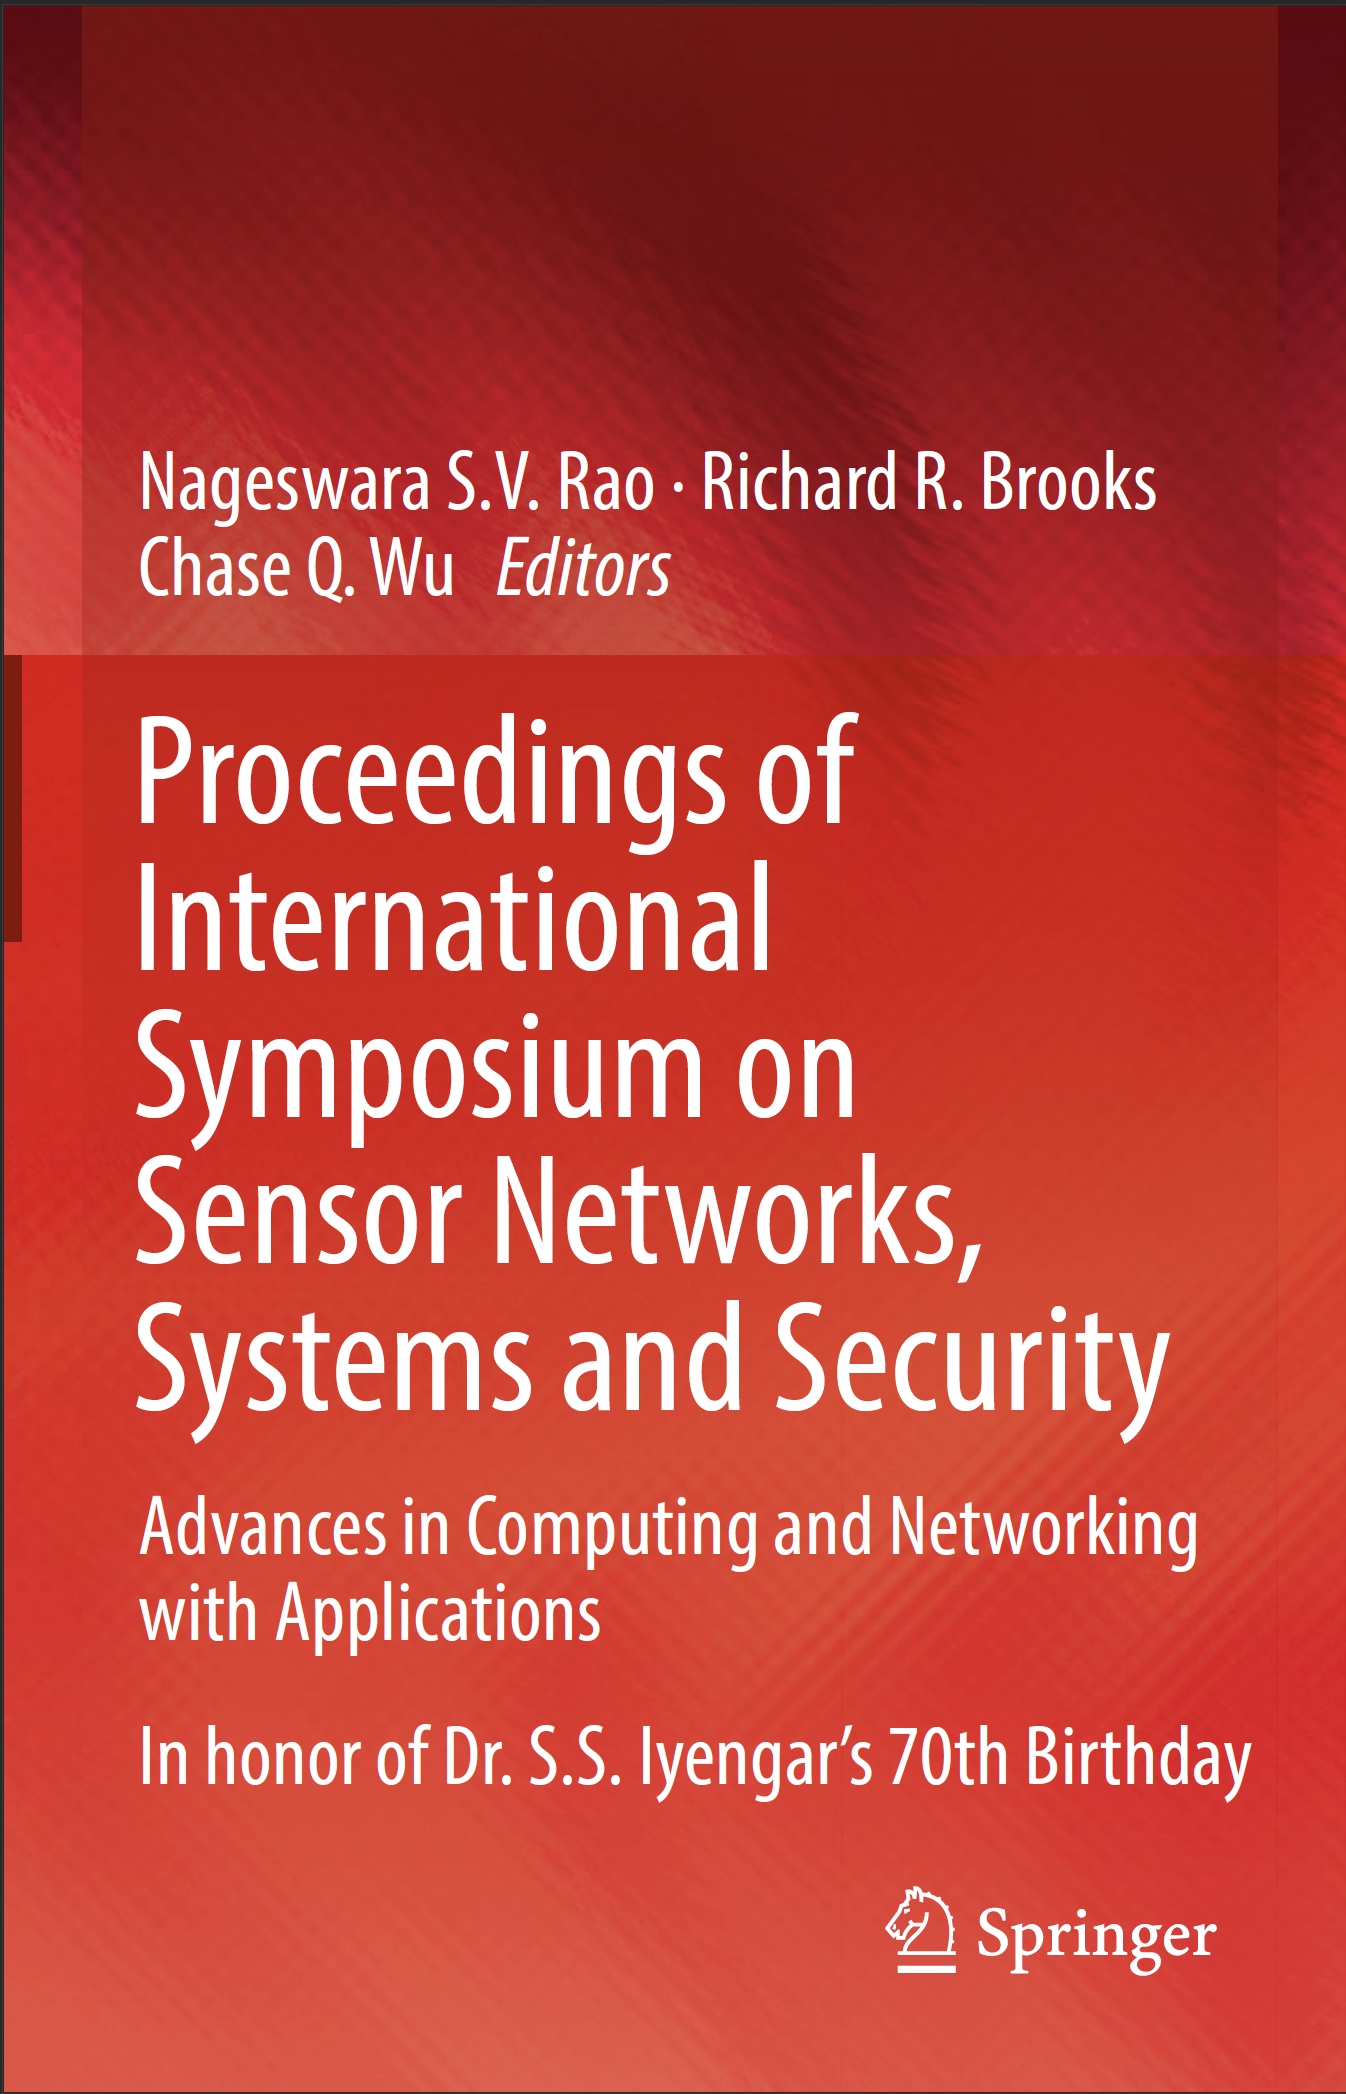 Image cover of Proceedings of International Symposium on Sensor Networks, Systems and Security